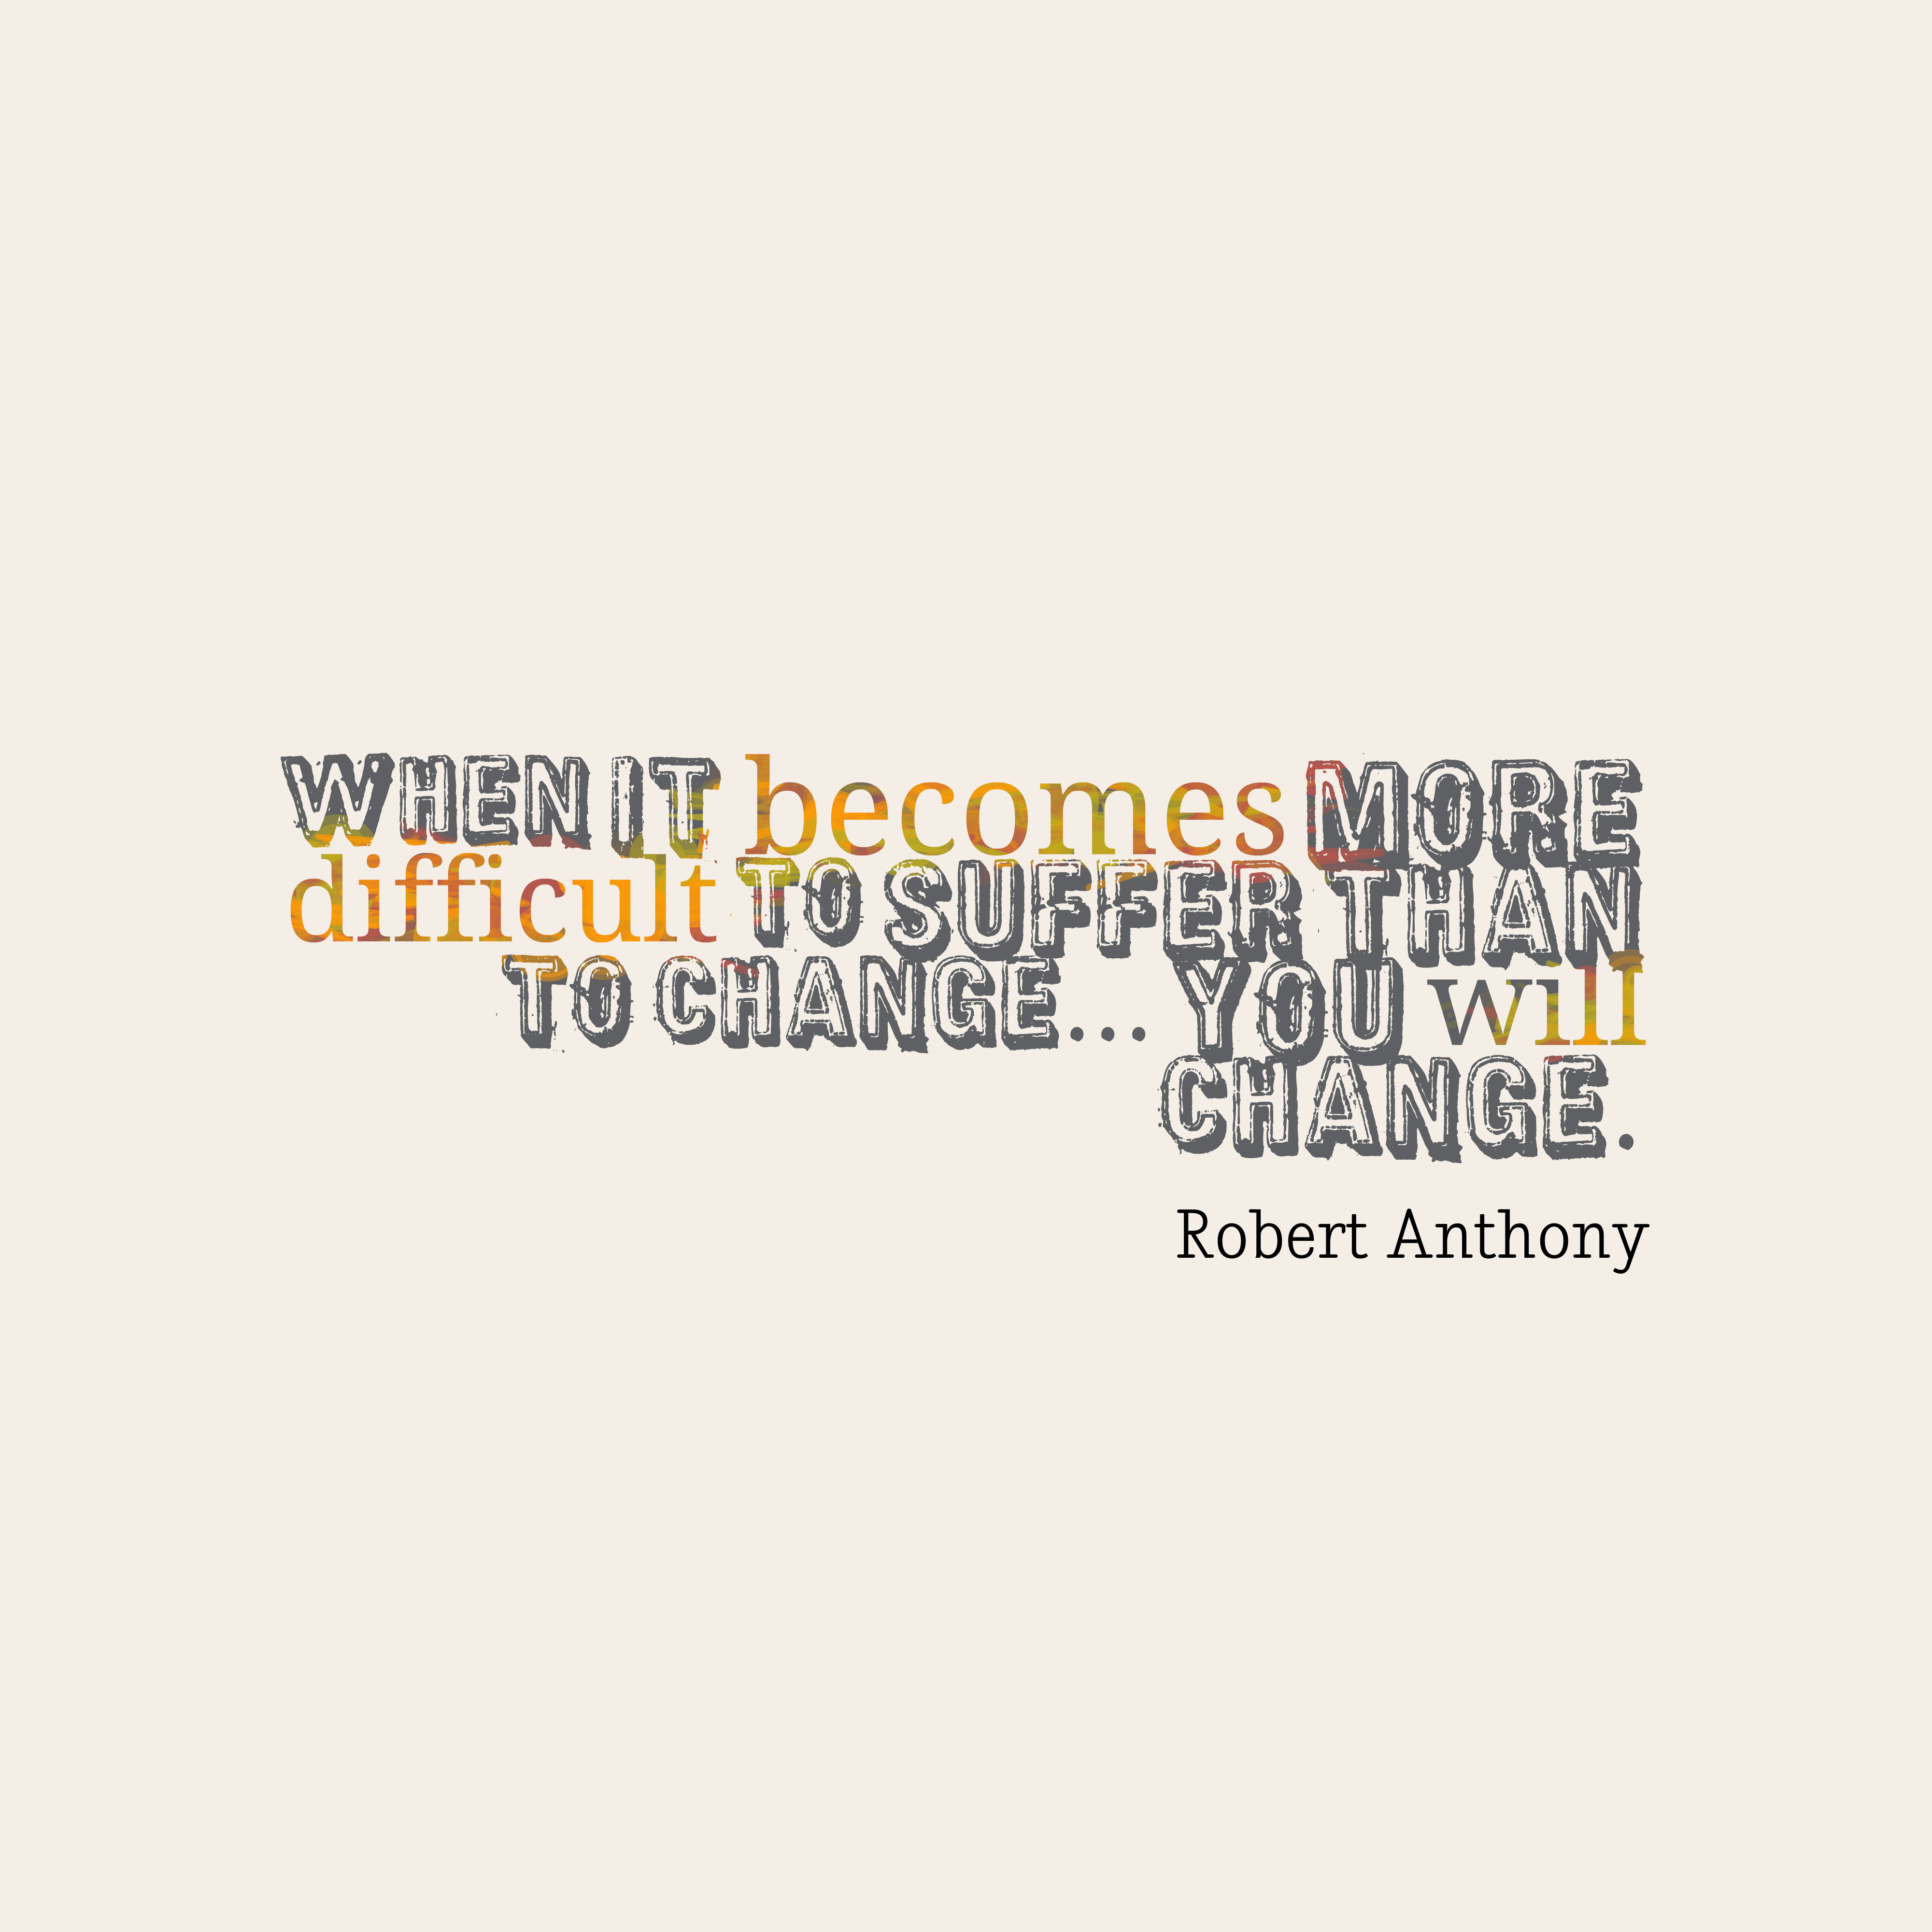 Robert Anthony Quote About Change